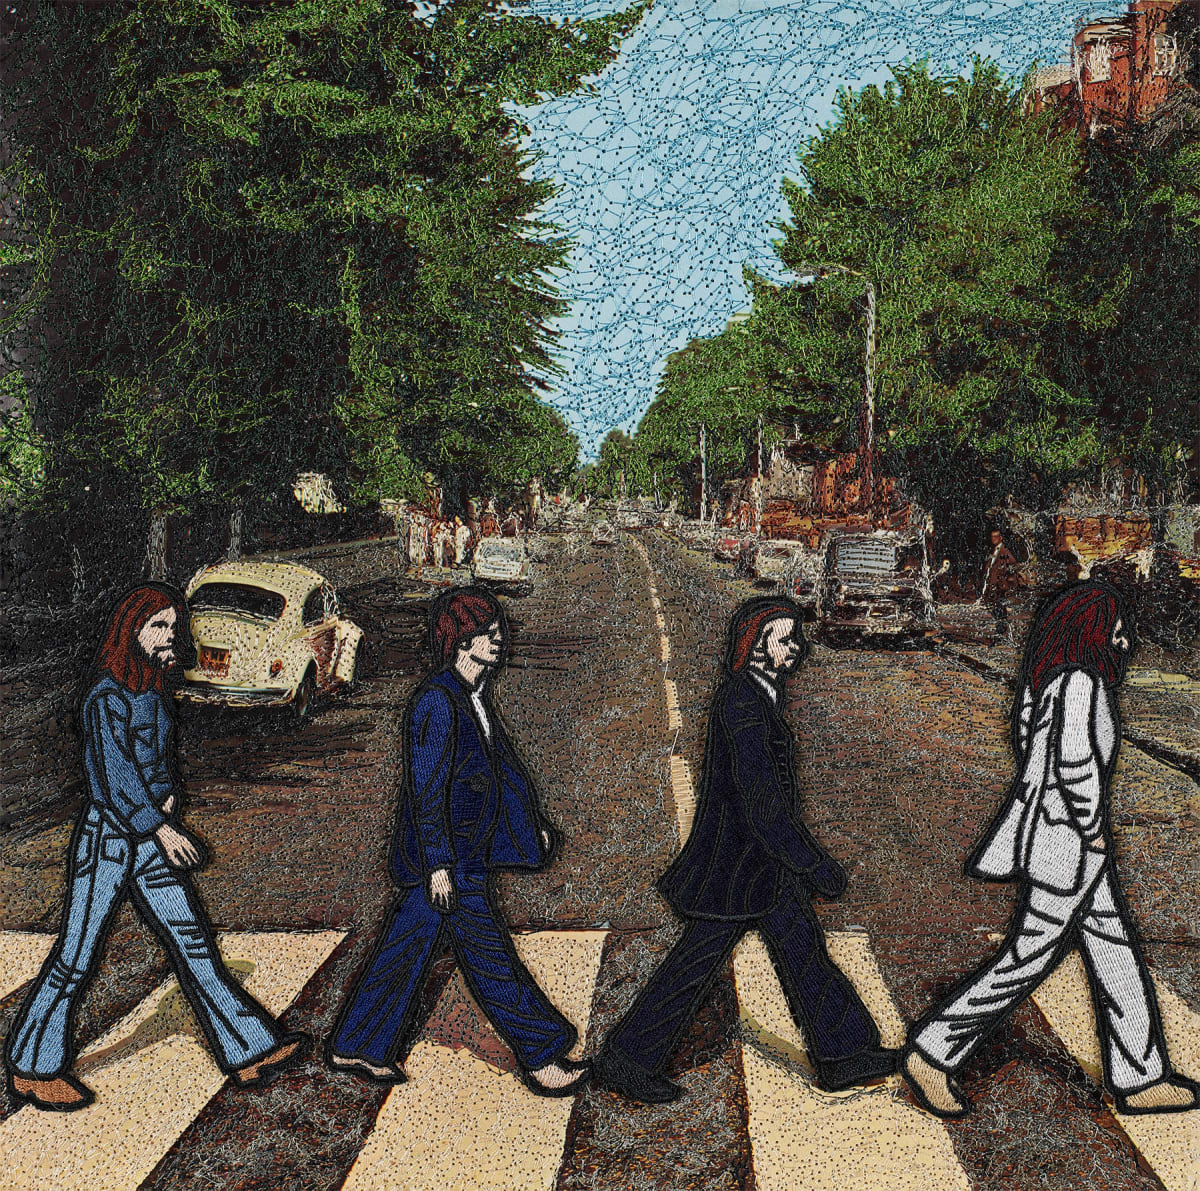 Stephen Wilson, Abbey Road, The Beatles , 2019